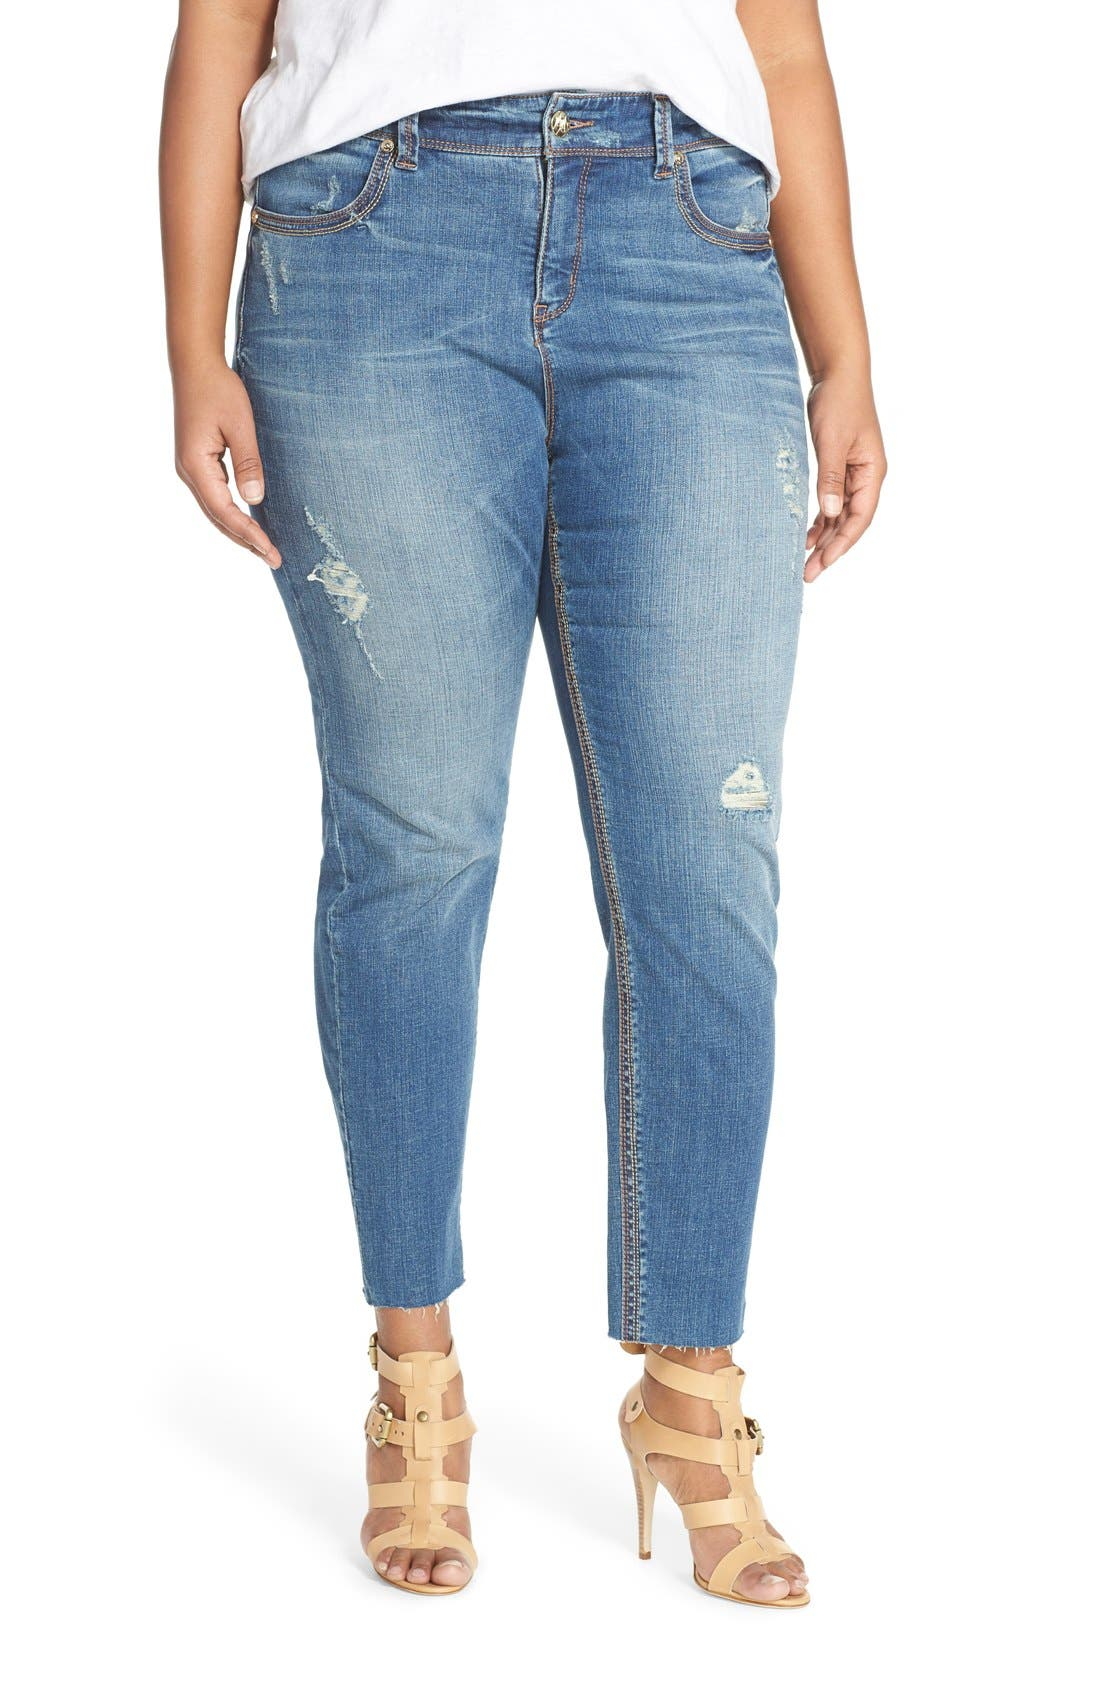 Alternate Image 1 Selected - Melissa McCarthy Seven7 Distressed Pencil Leg Jeans (Nantucket) (Plus Size)